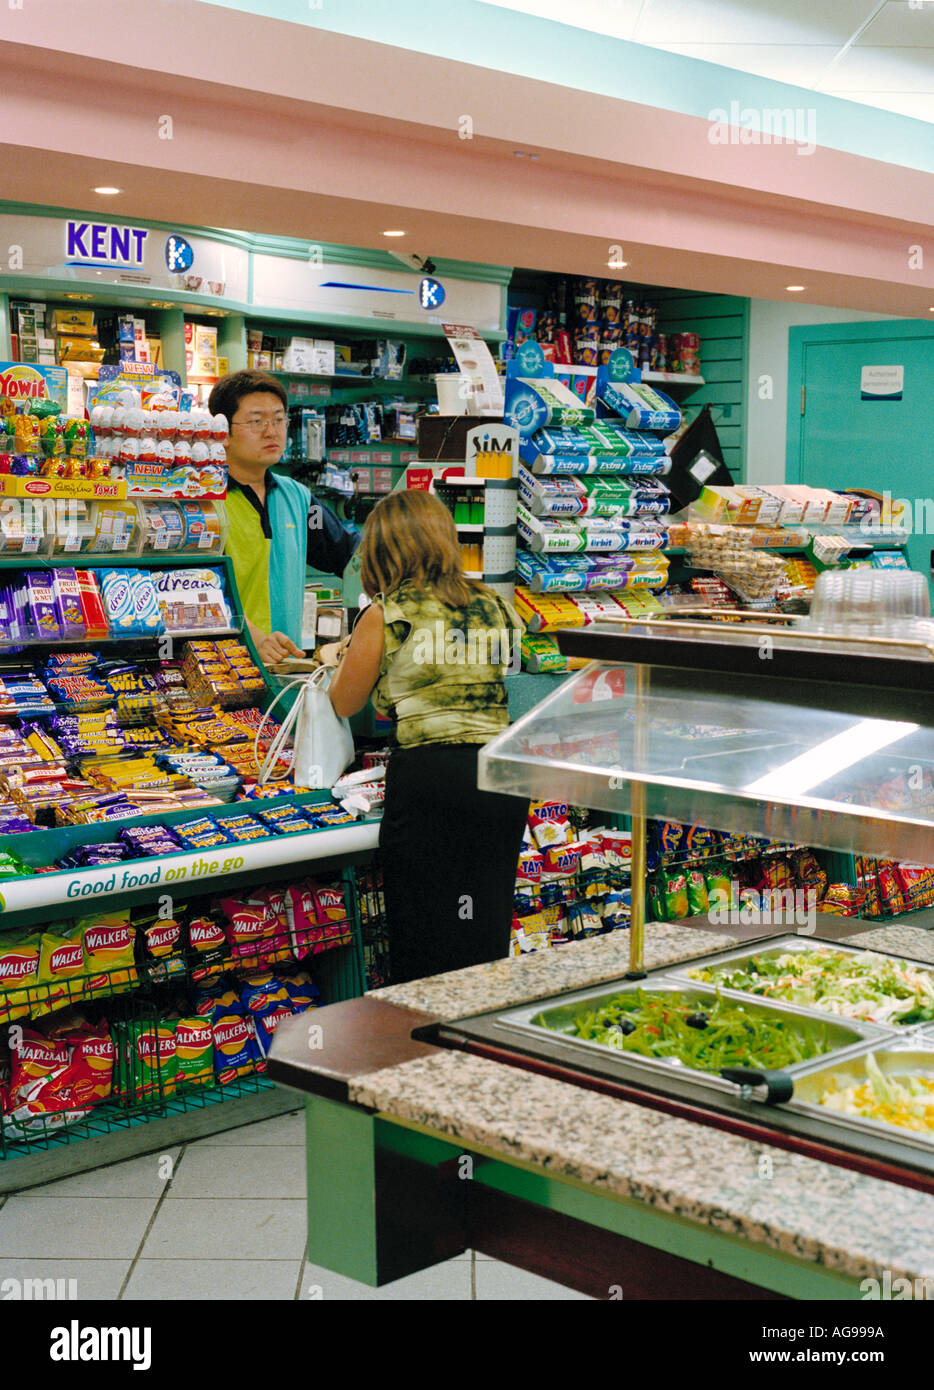 Interior of a small grocery store Stock Photo, Royalty Free Image ...